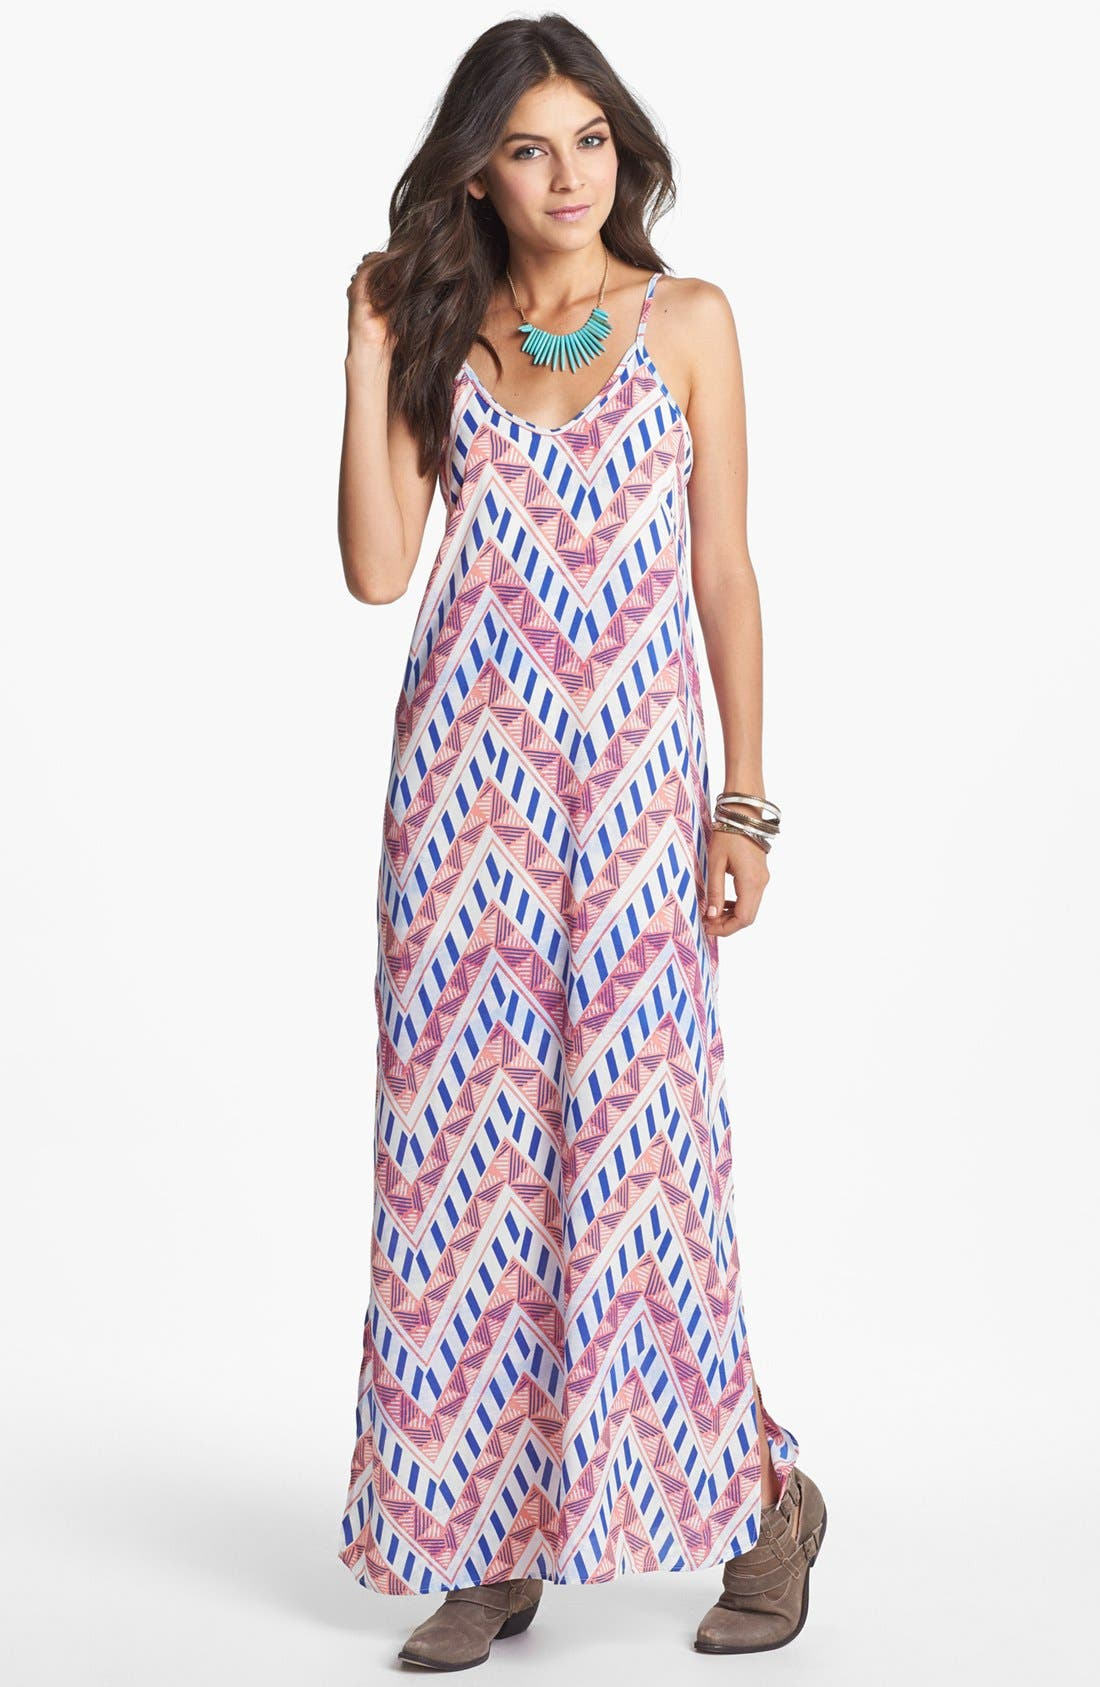 Alternate Image 1 Selected - Lush Back Cutout Print Maxi Dress (Juniors)